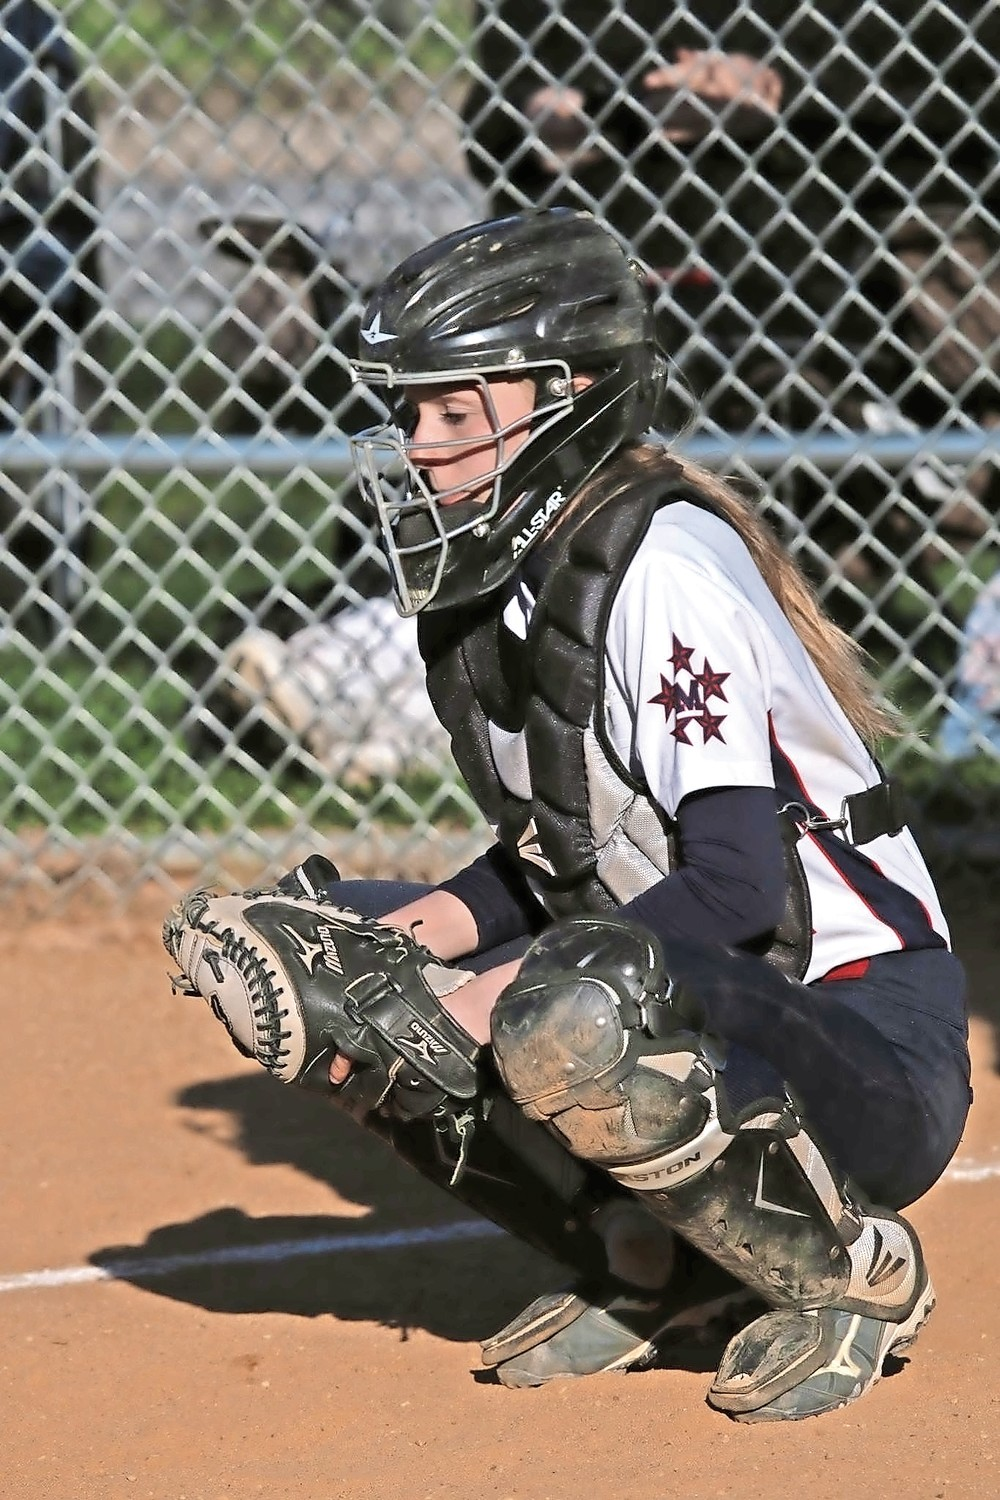 Ashley Budrewicz, Jessica's twin and battery-mate, behind the plate.